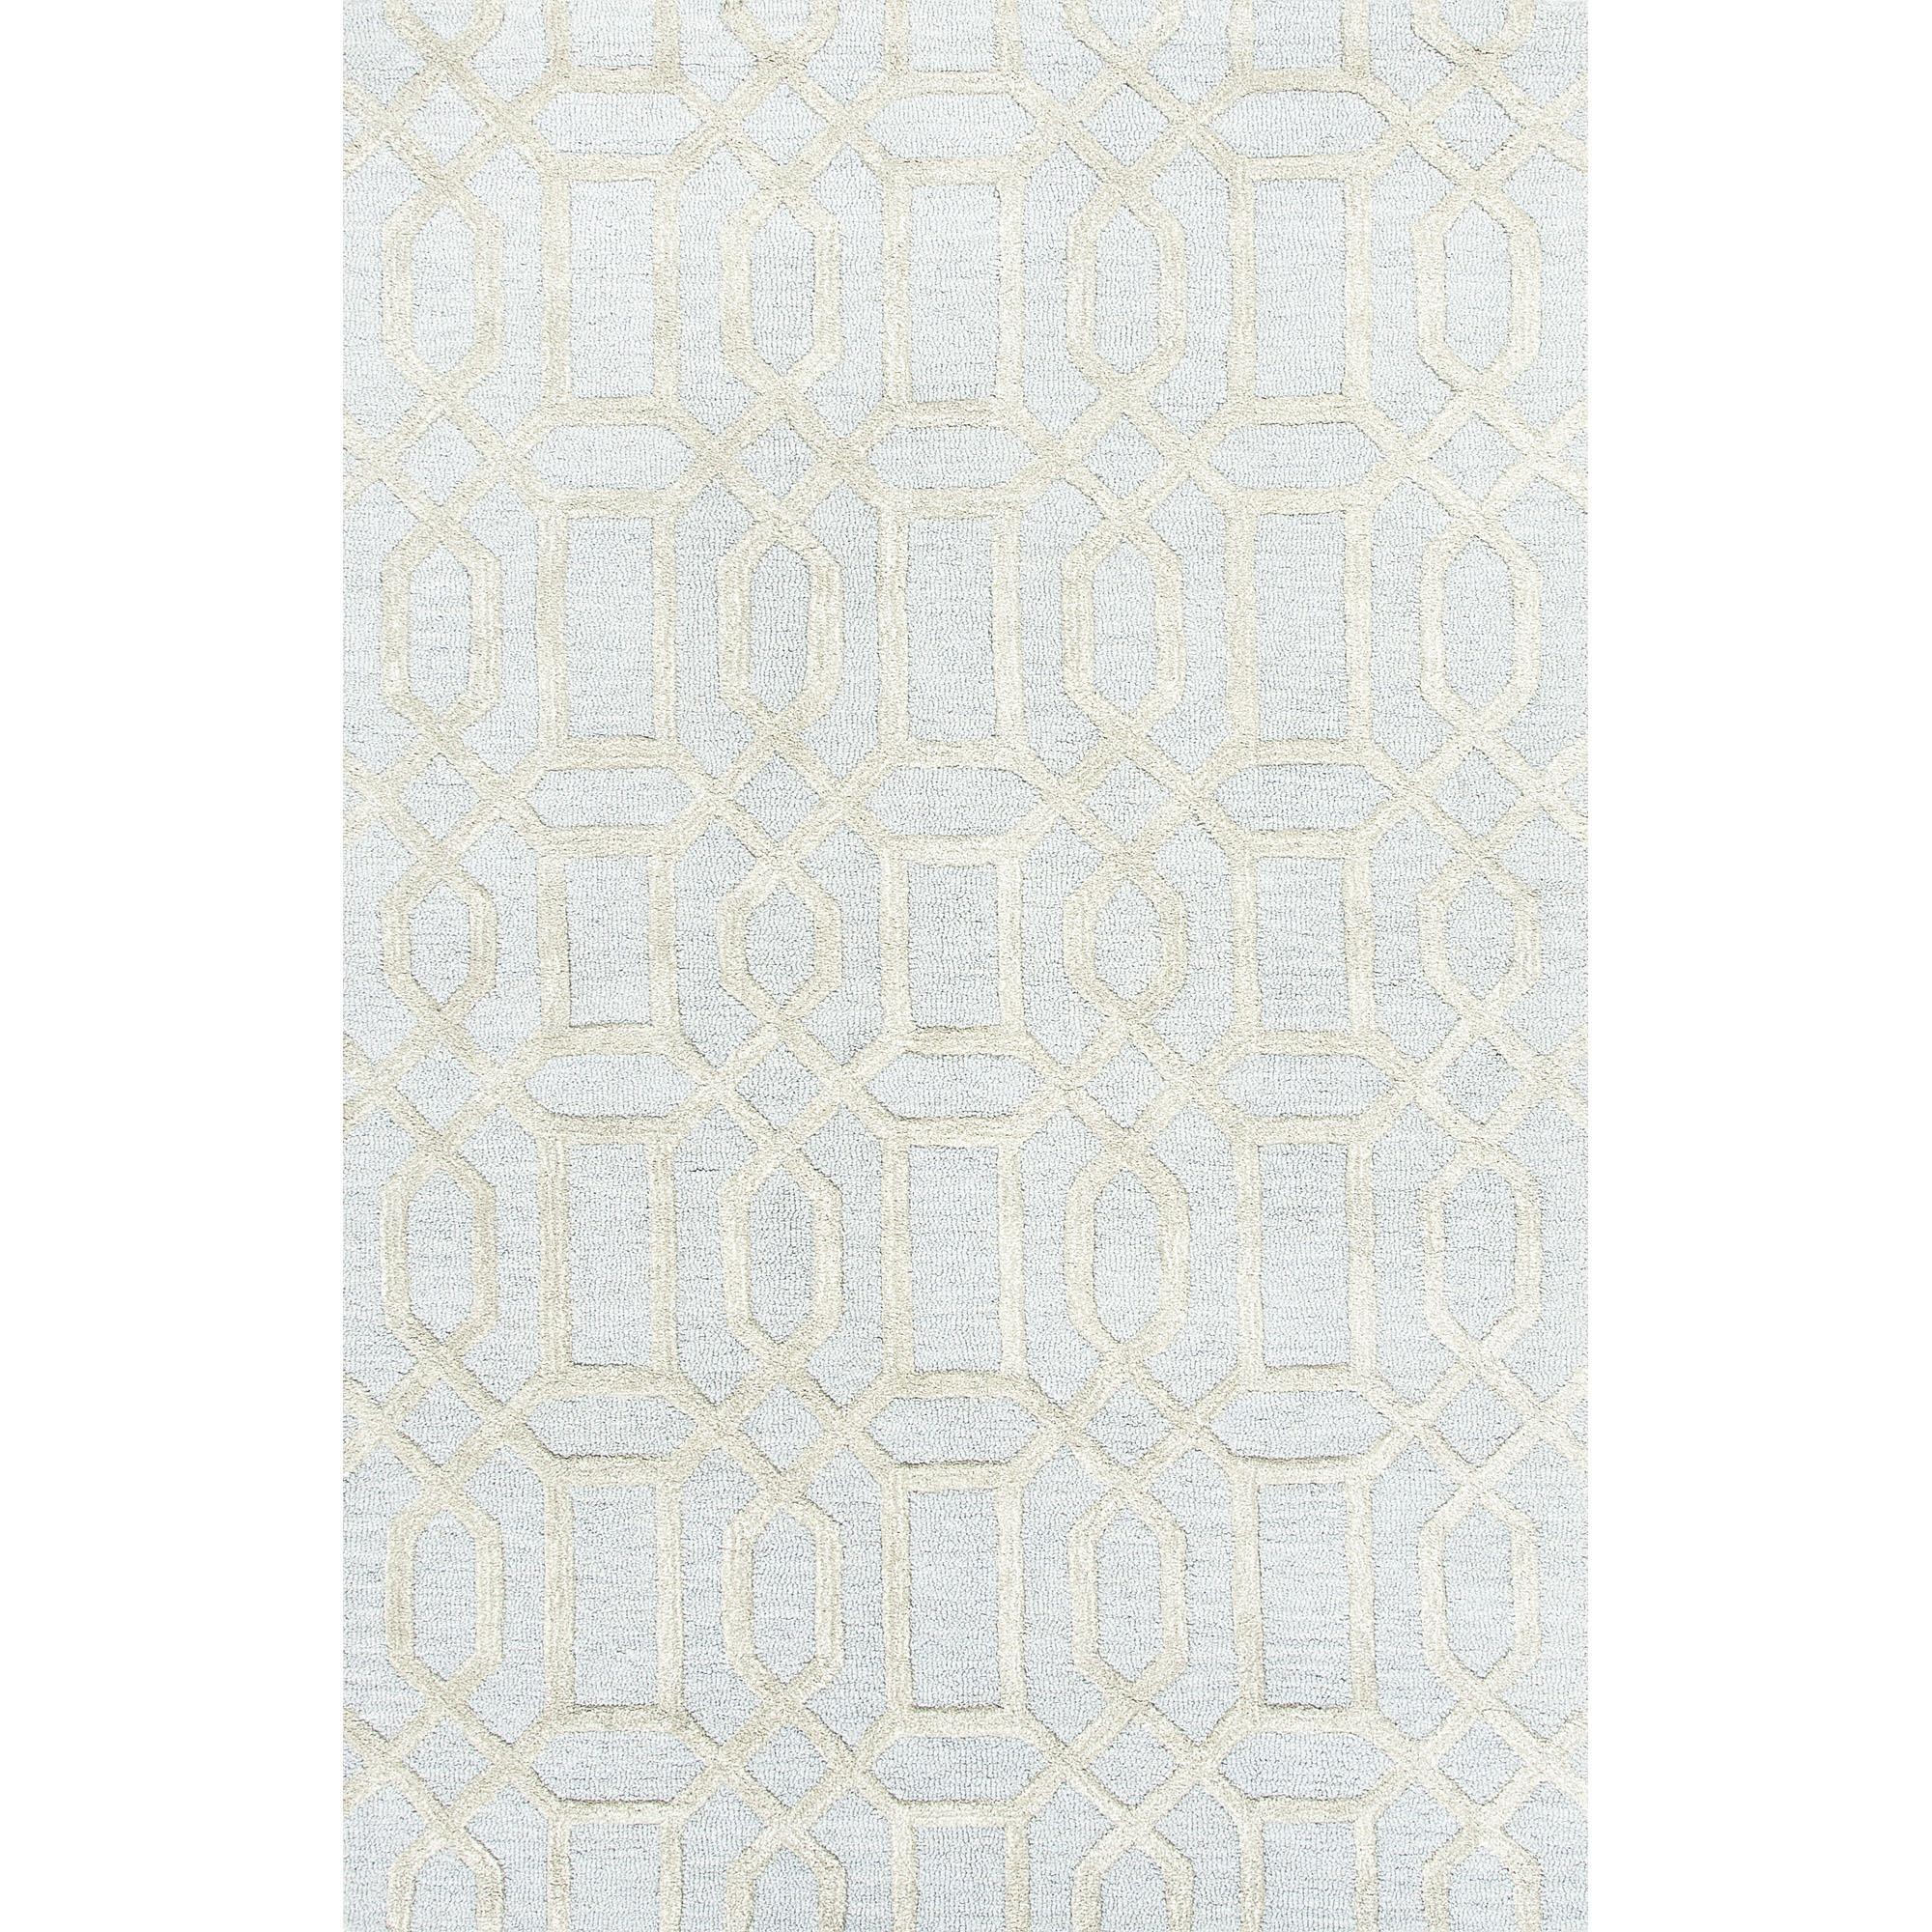 JAIPUR Rugs City 2 x 3 Rug - Item Number: RUG111014